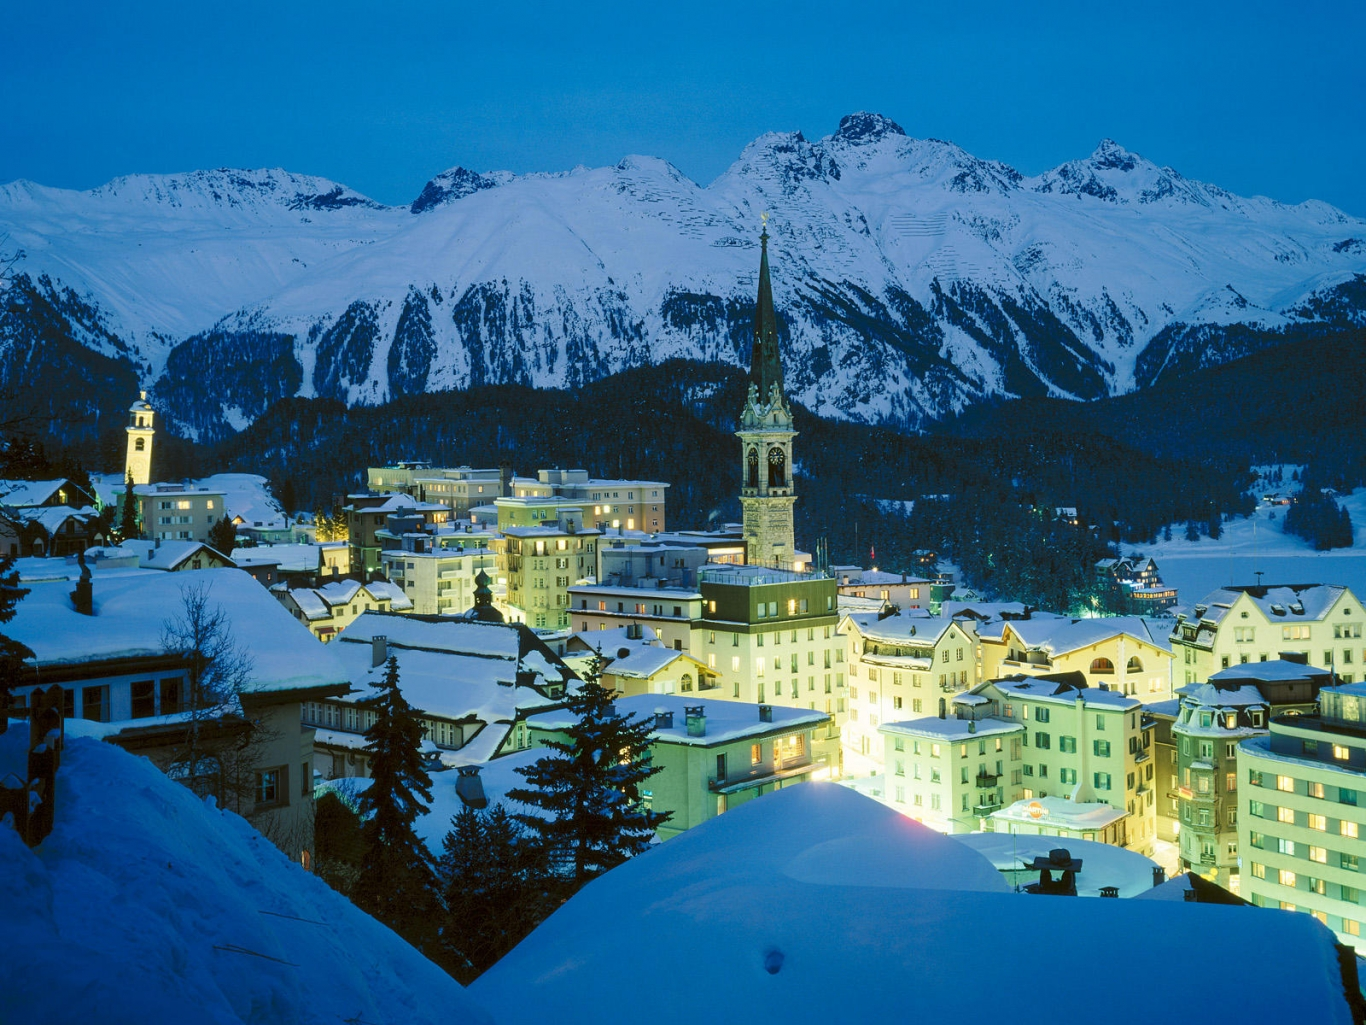 Night City in Lights and Snow in Switzerland 657.94 Kb